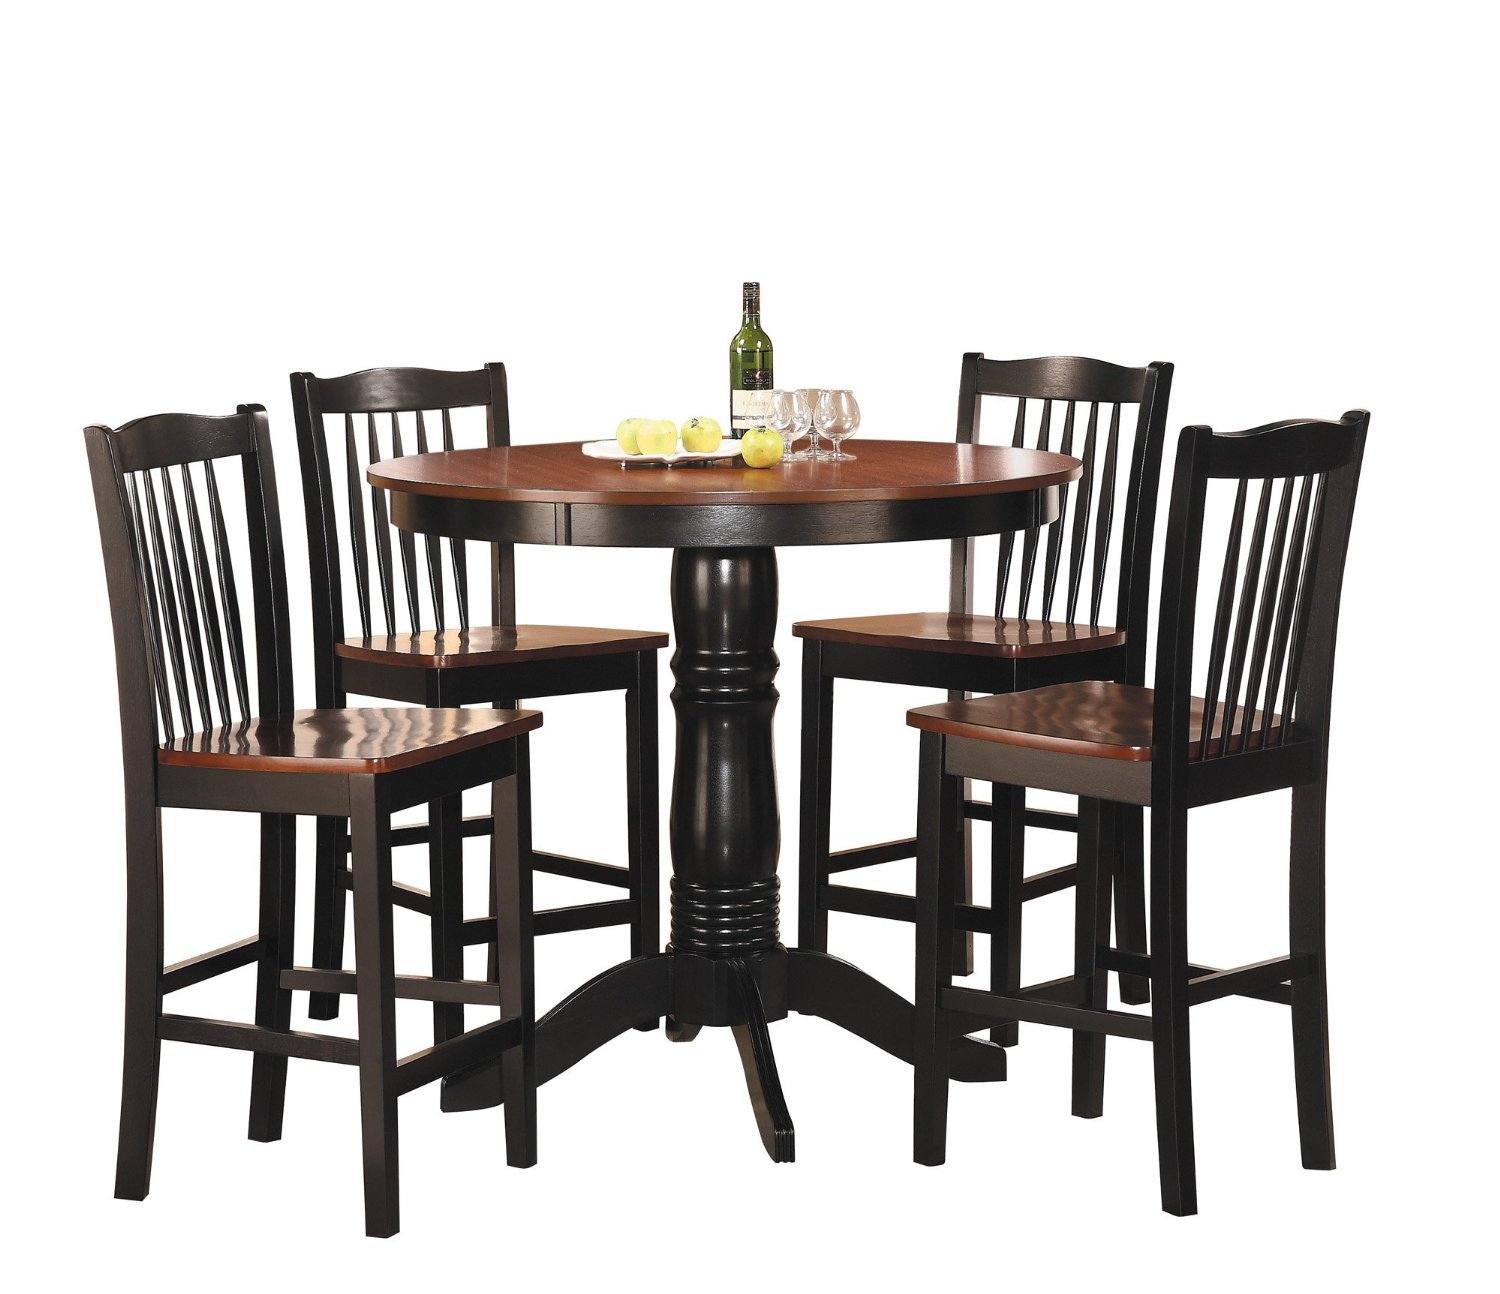 Top 5 Kitchen Table Sets Under 500 Boldlist focus for Kitchen Table Sets Under 500